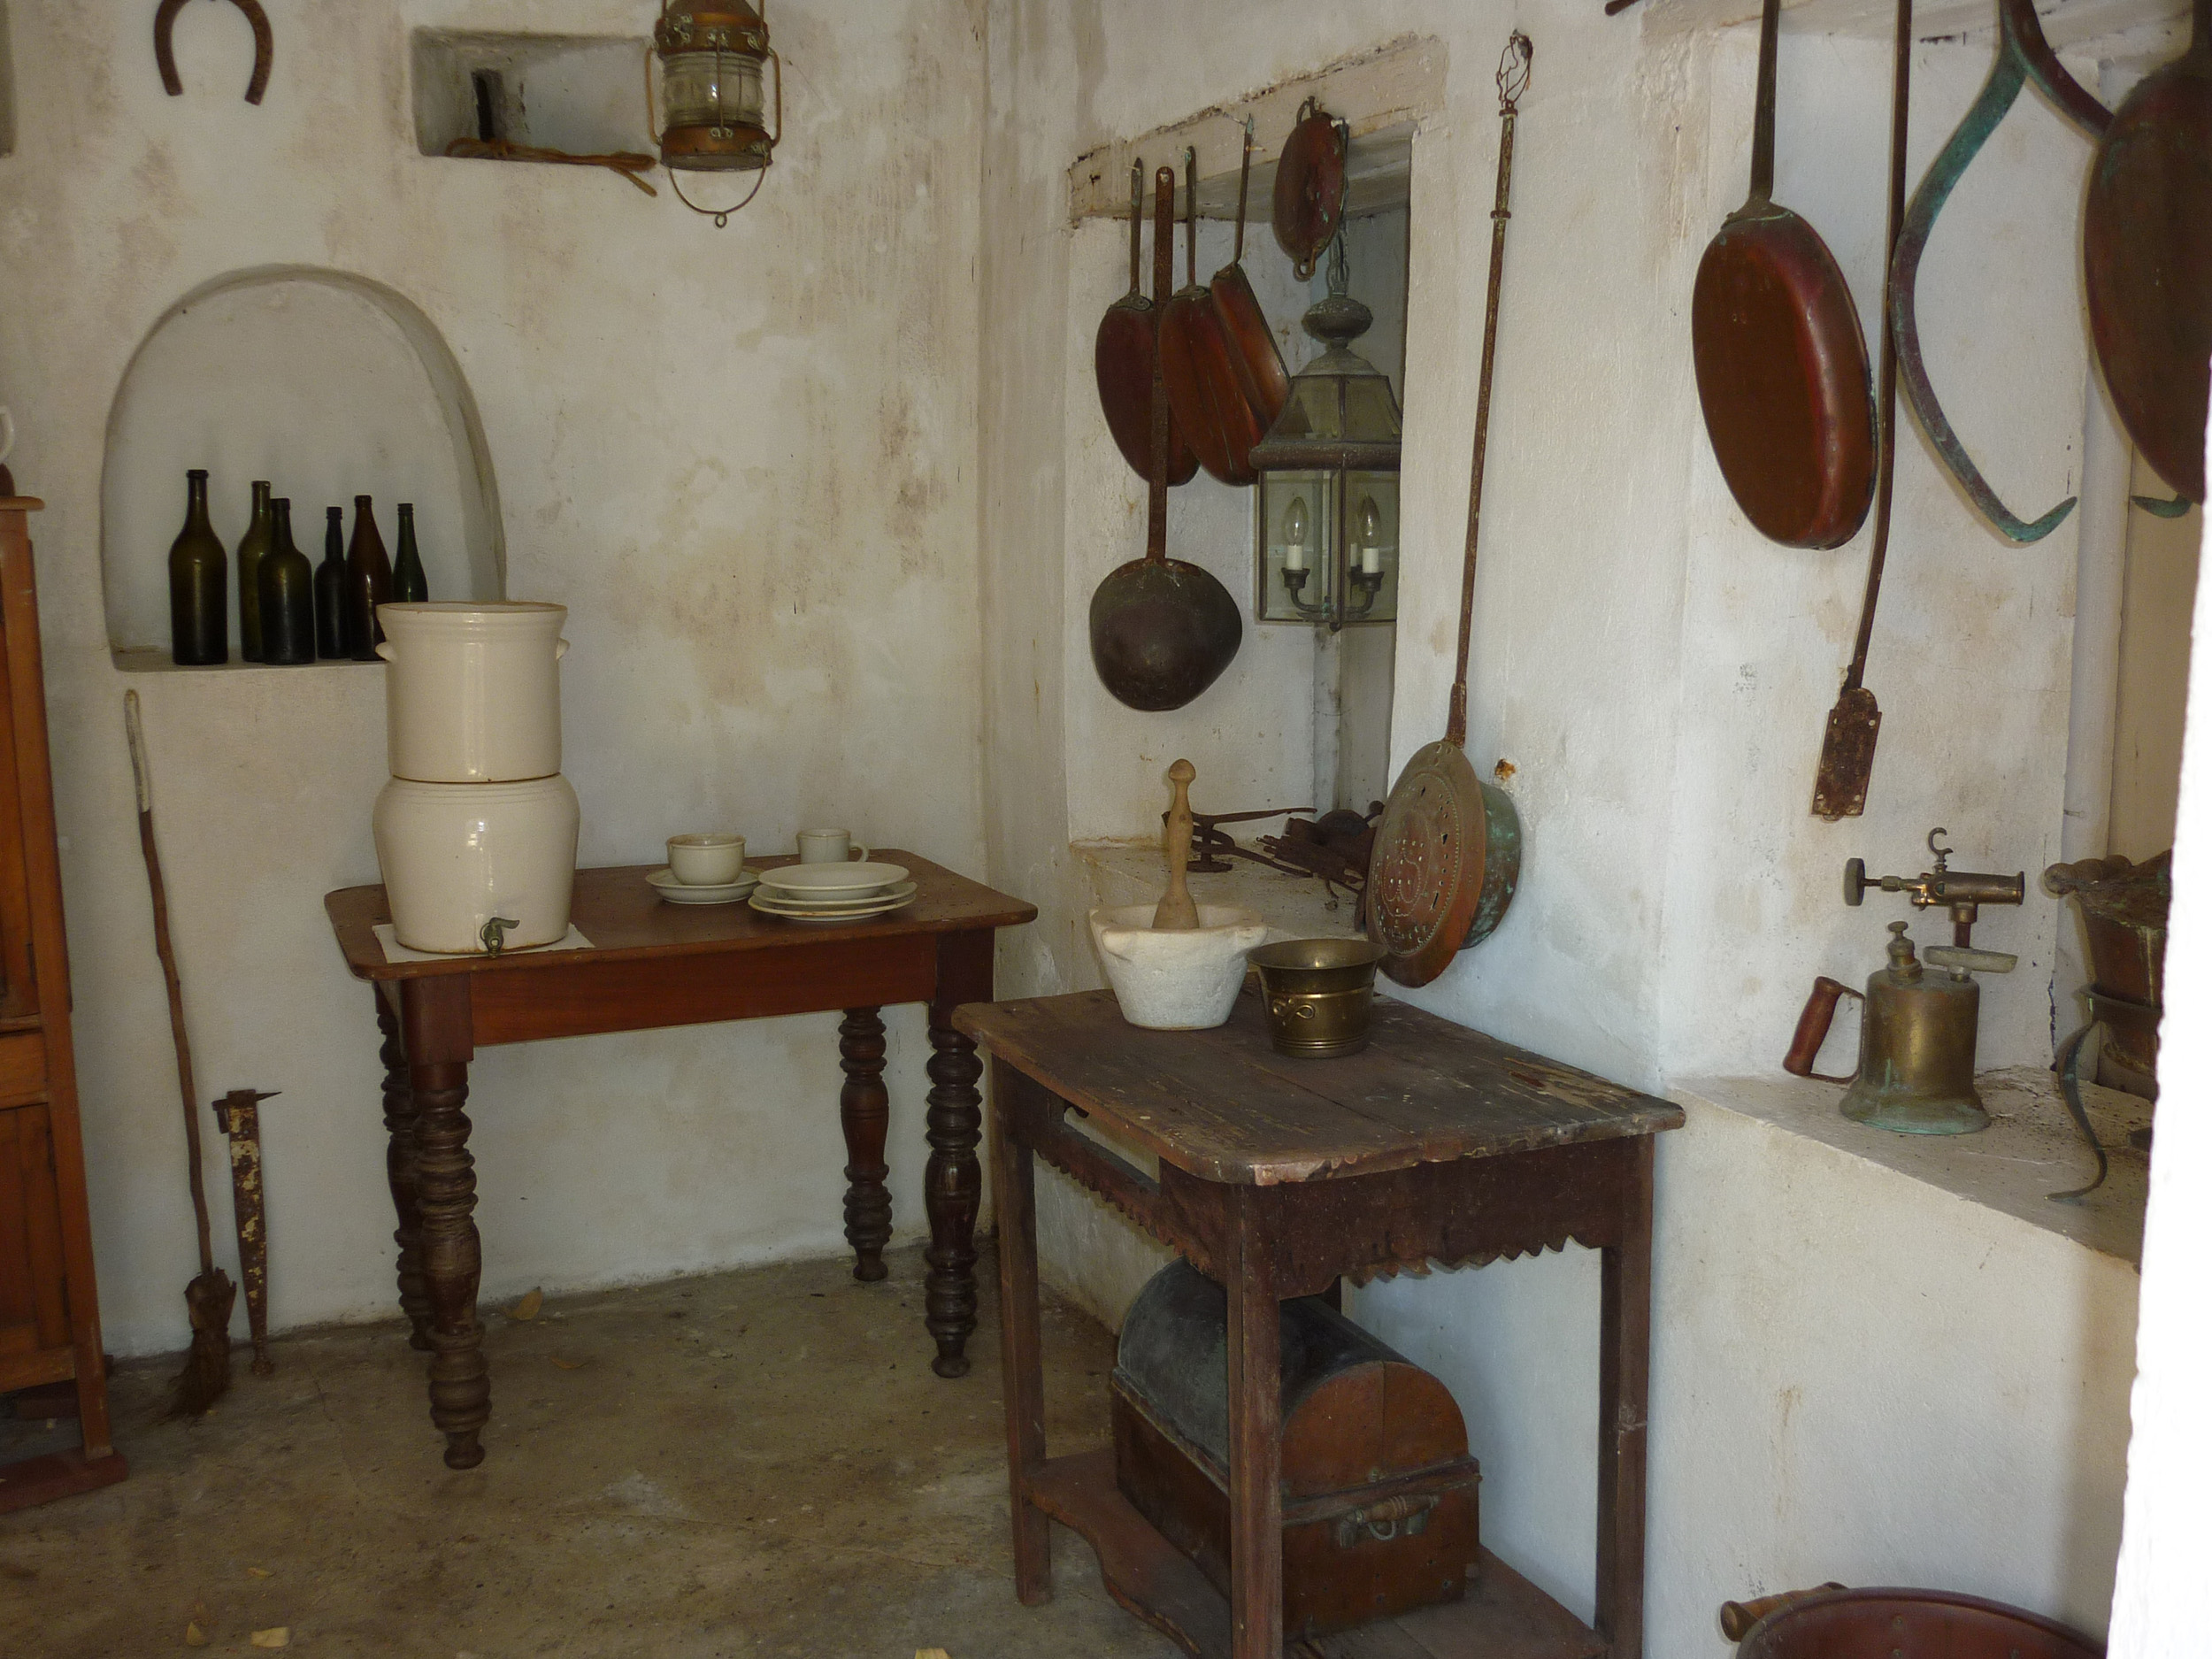 interior of an old still kitchen